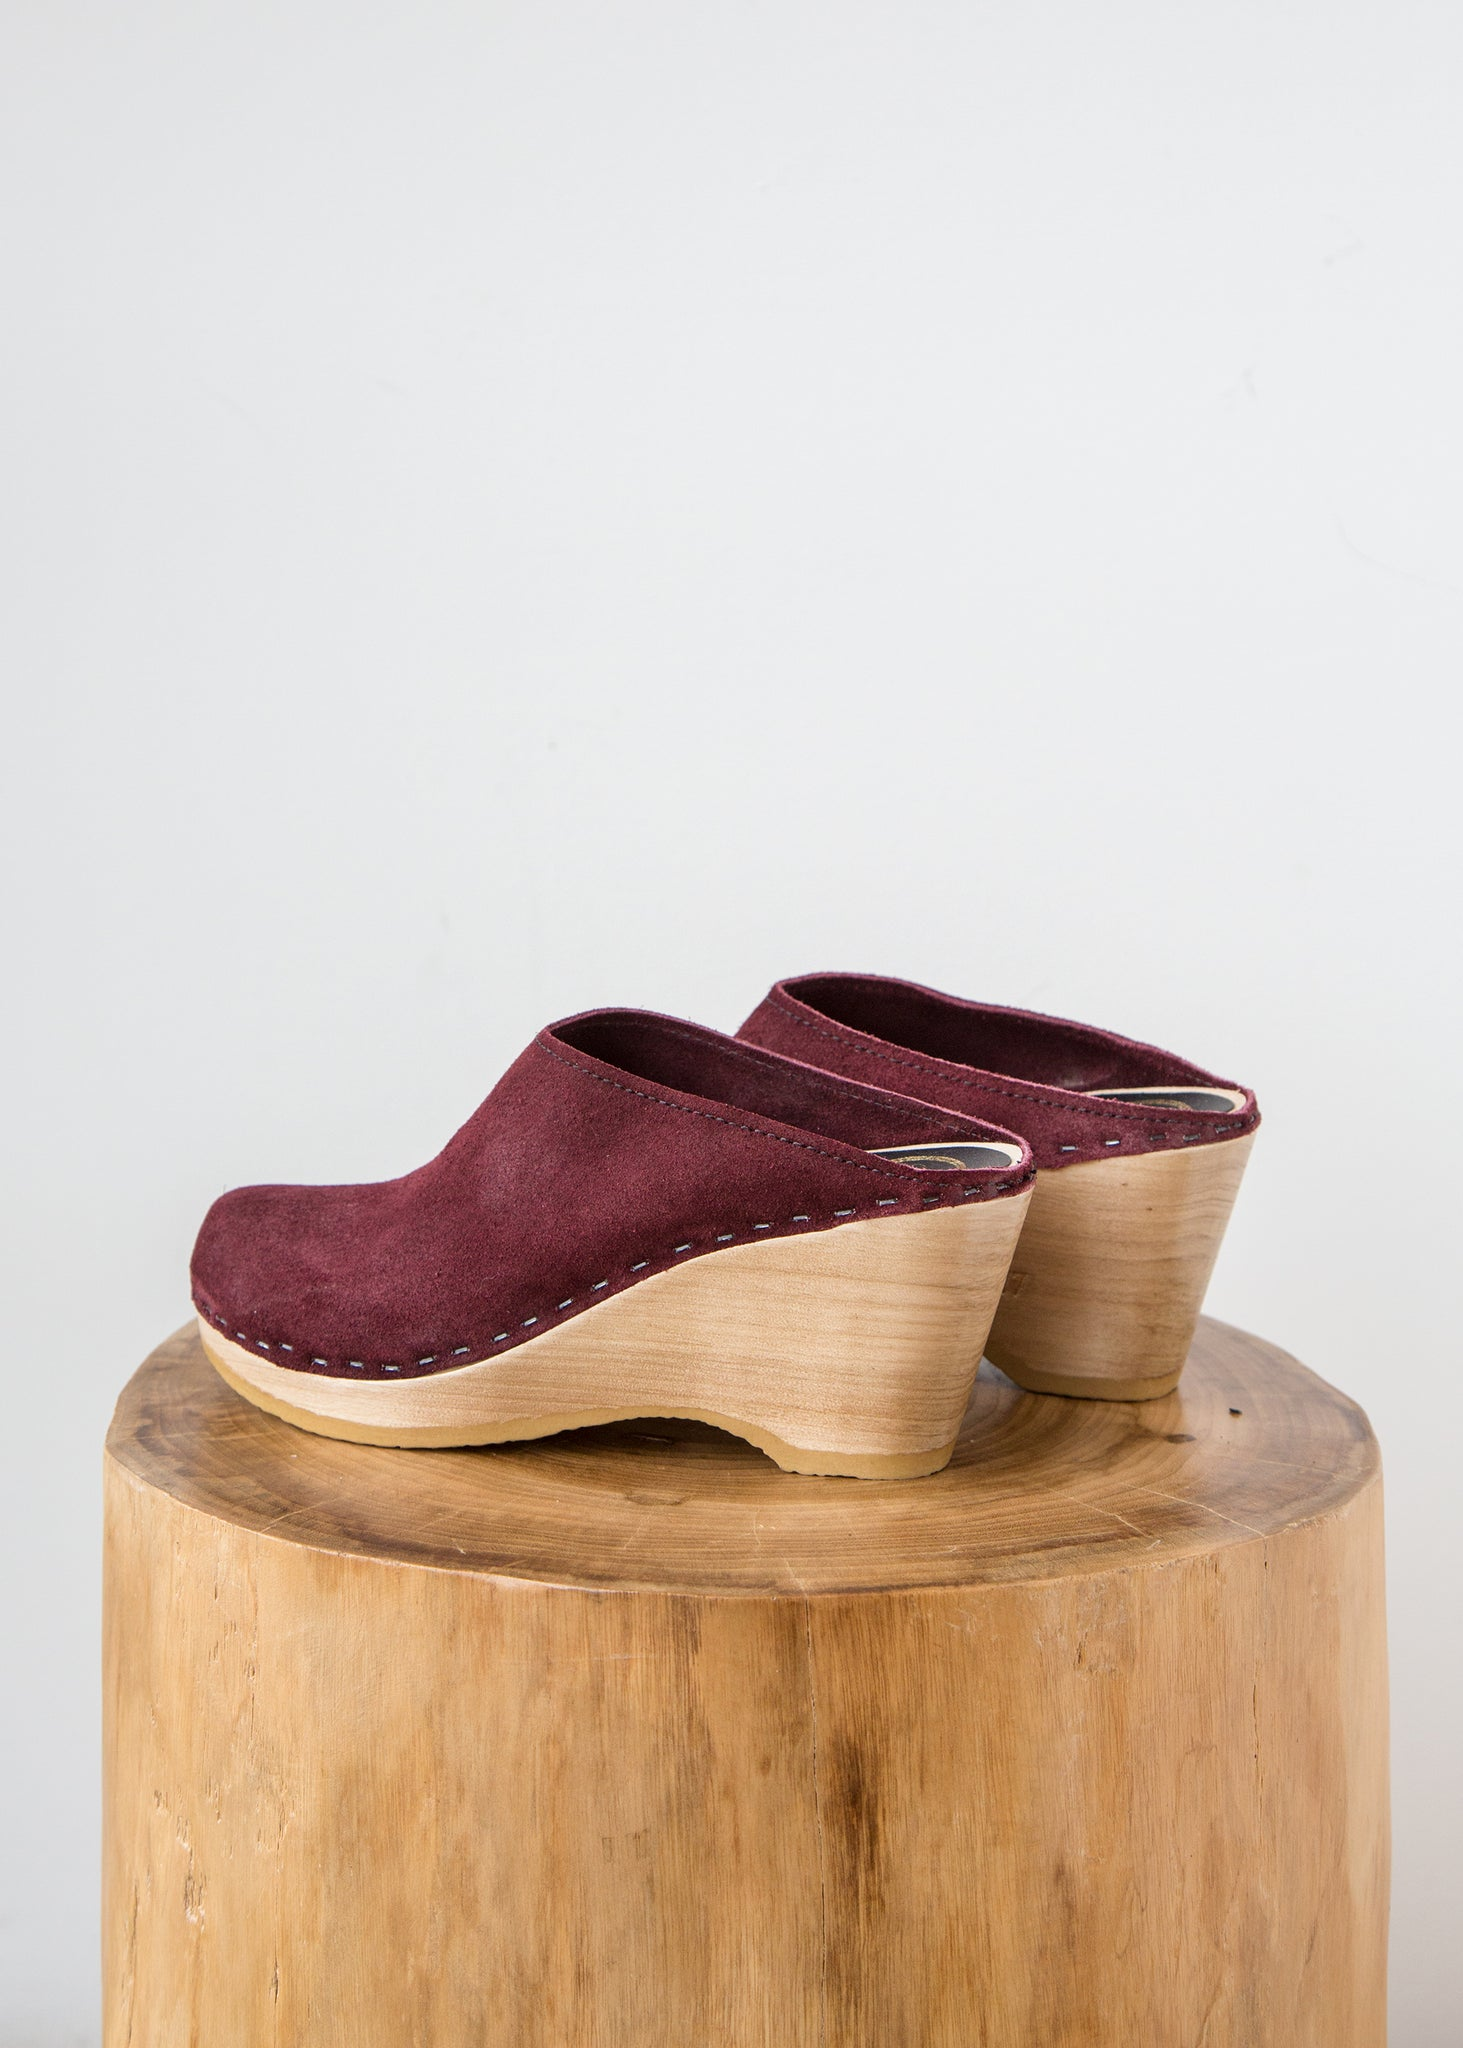 No6 New School Clog On Wedge Burgundy Suede Sold Out Finefolk